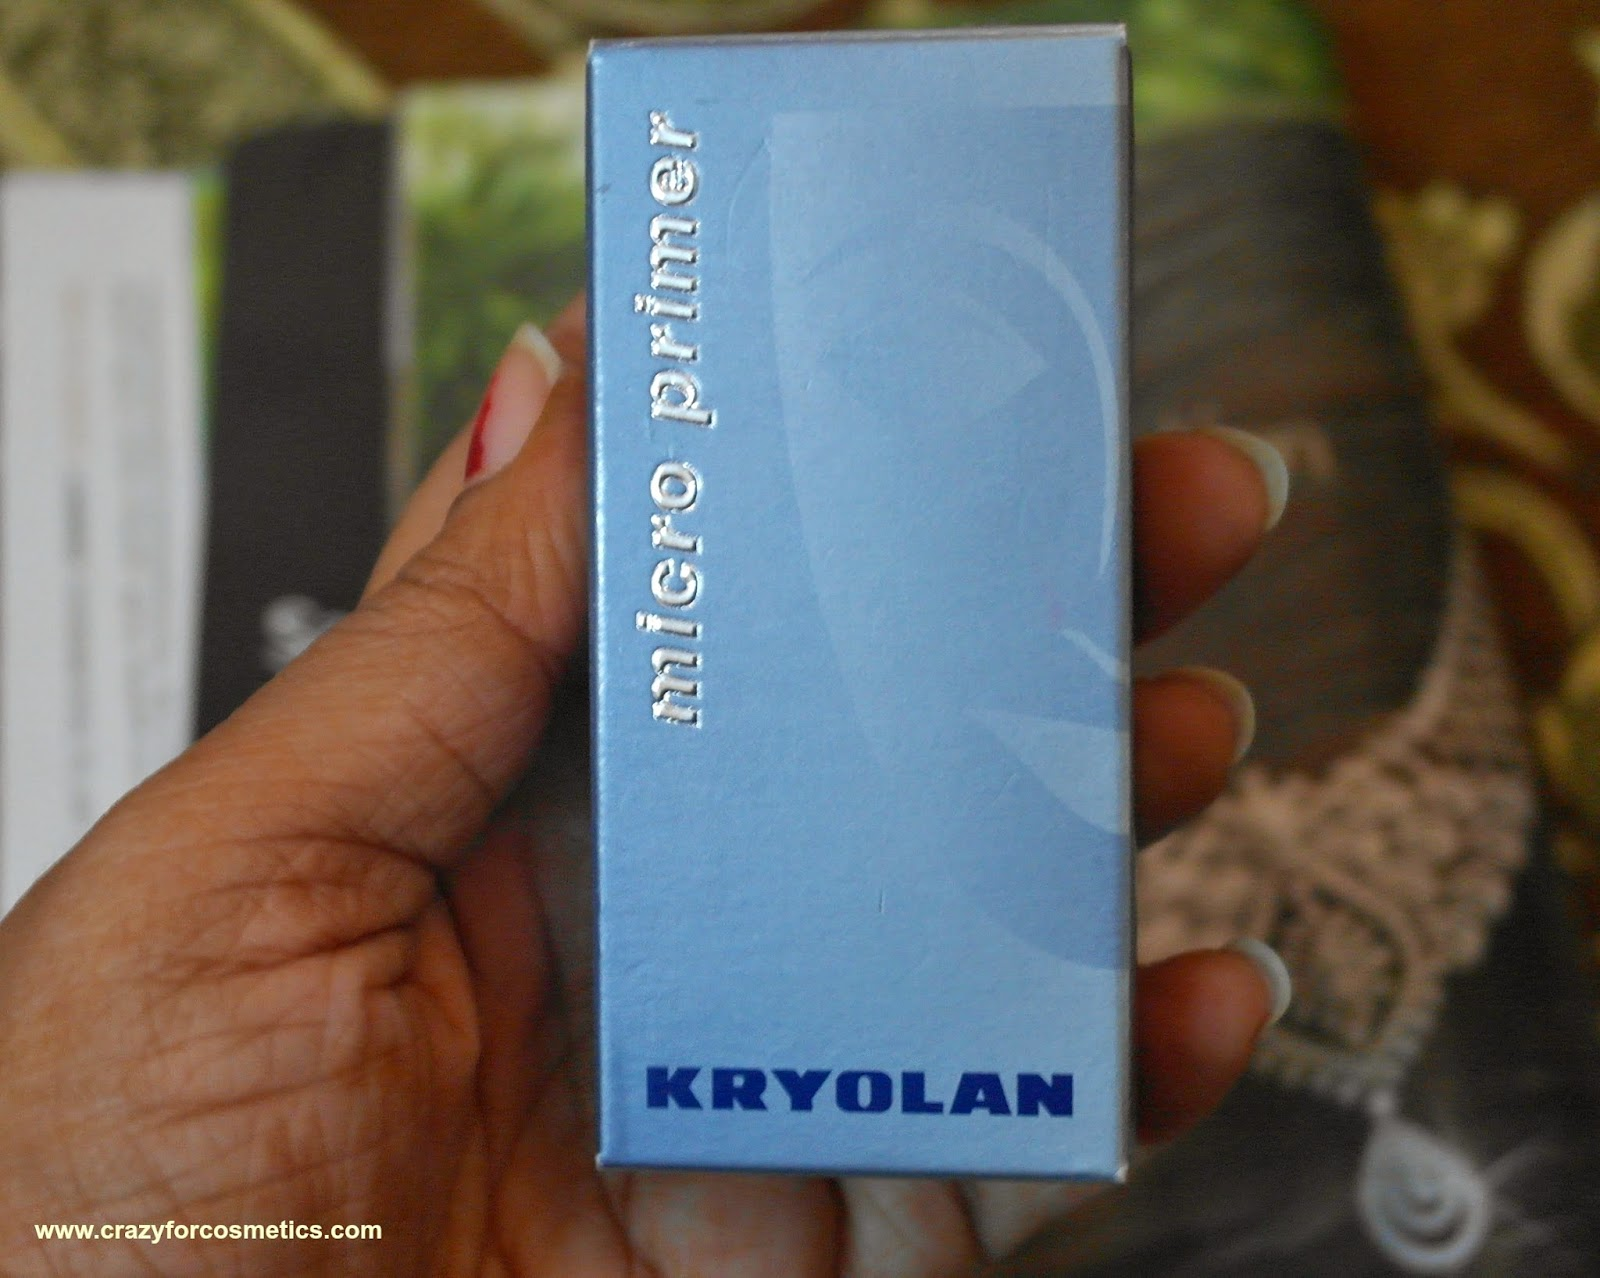 Kryolan Germnay professional makeup products